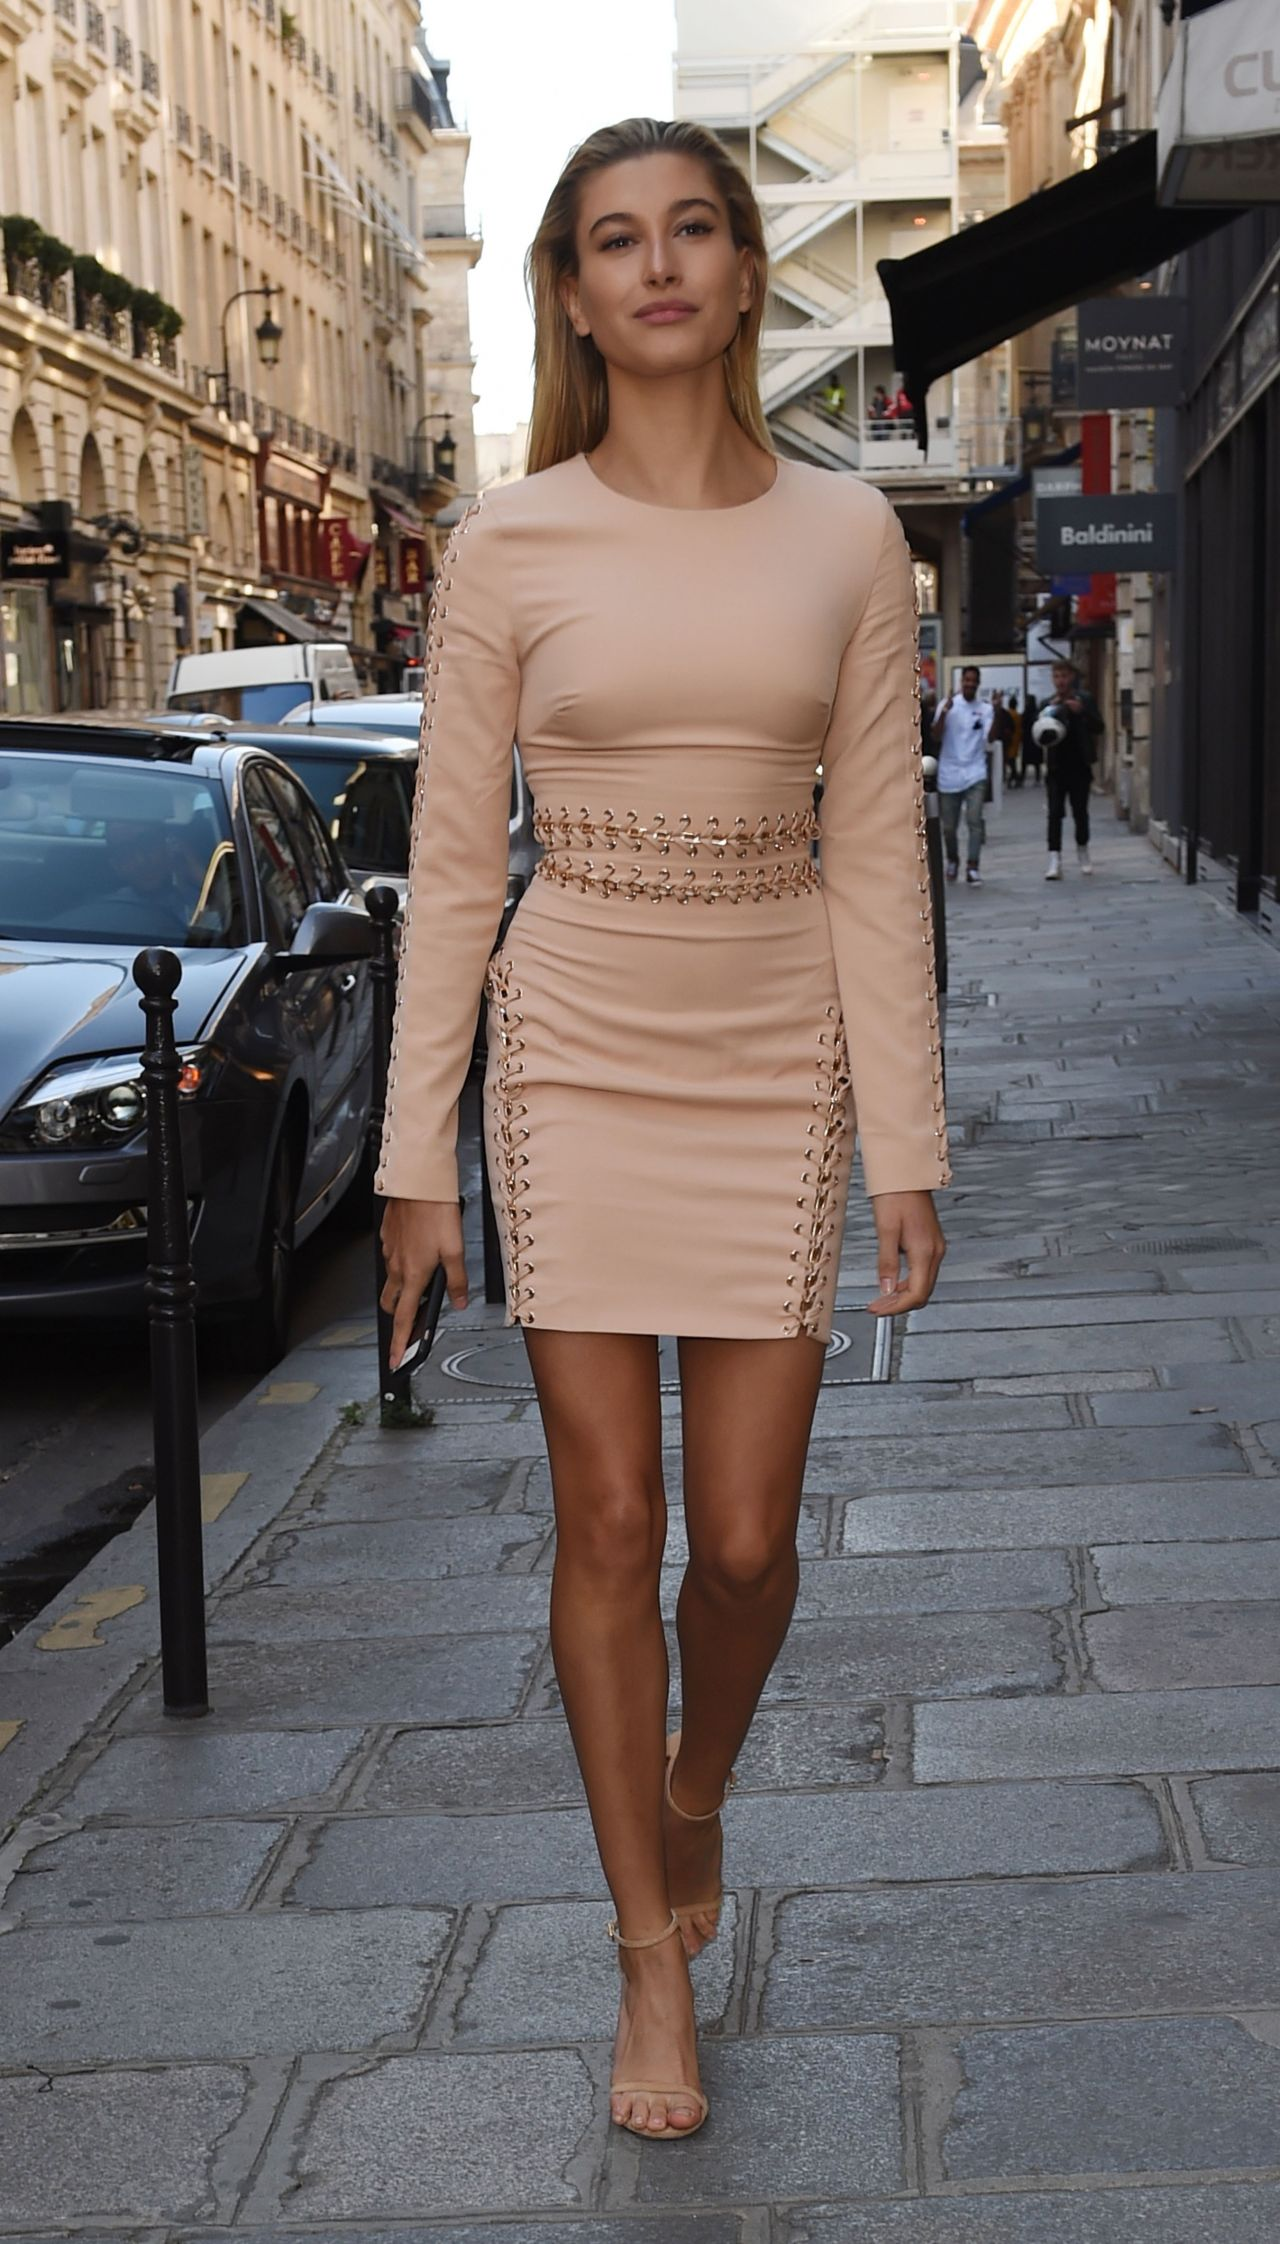 Hailey Baldwin In Mini Dress - Out In Paris, October 2015-4449